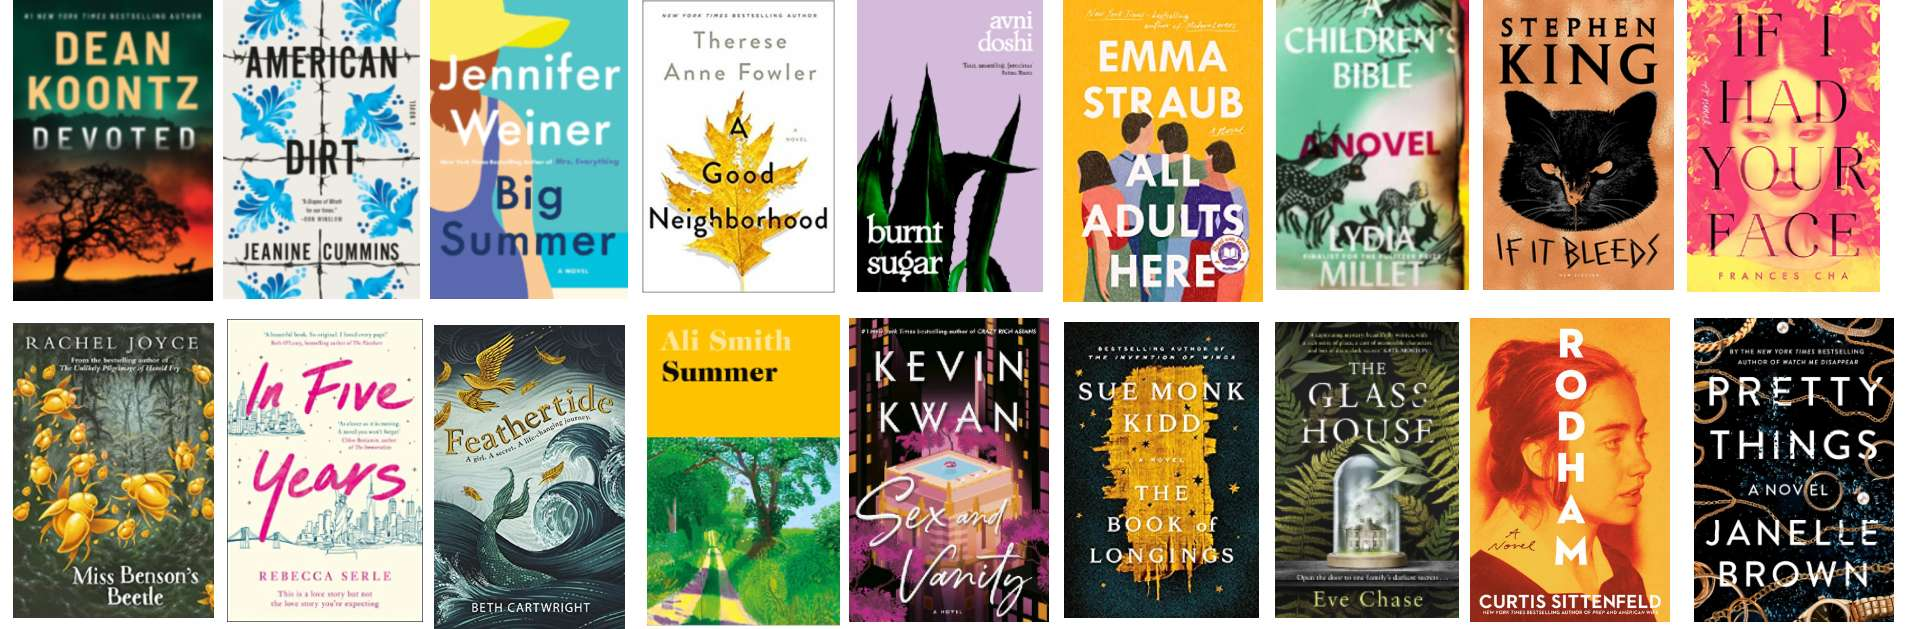 kaveesh.com-blog-books-20-FICTION BOOKS-BEST BOOKS TO READ IN 2020 (2)